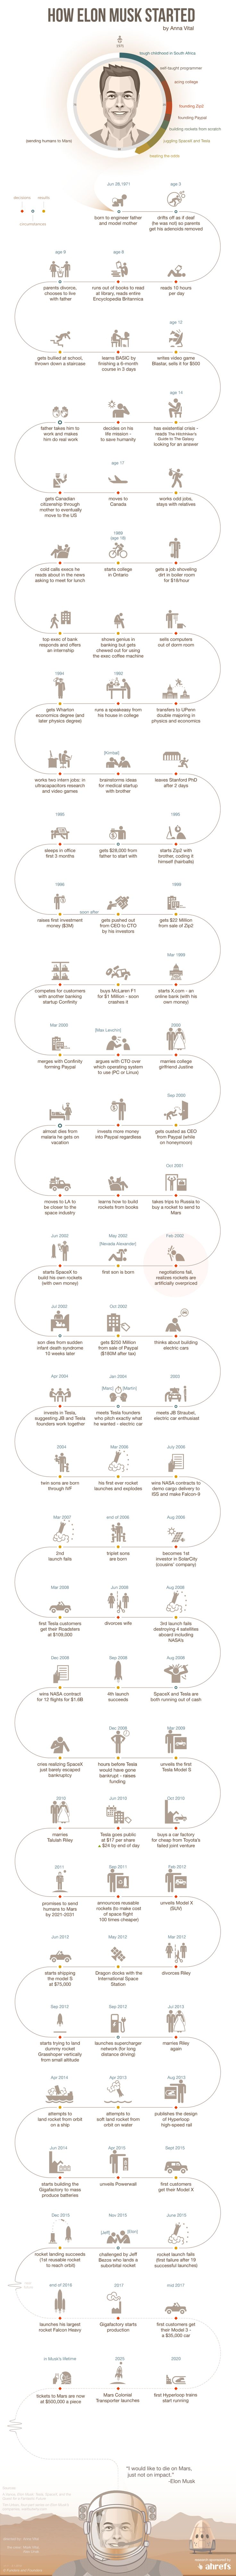 how elon musk started infographic